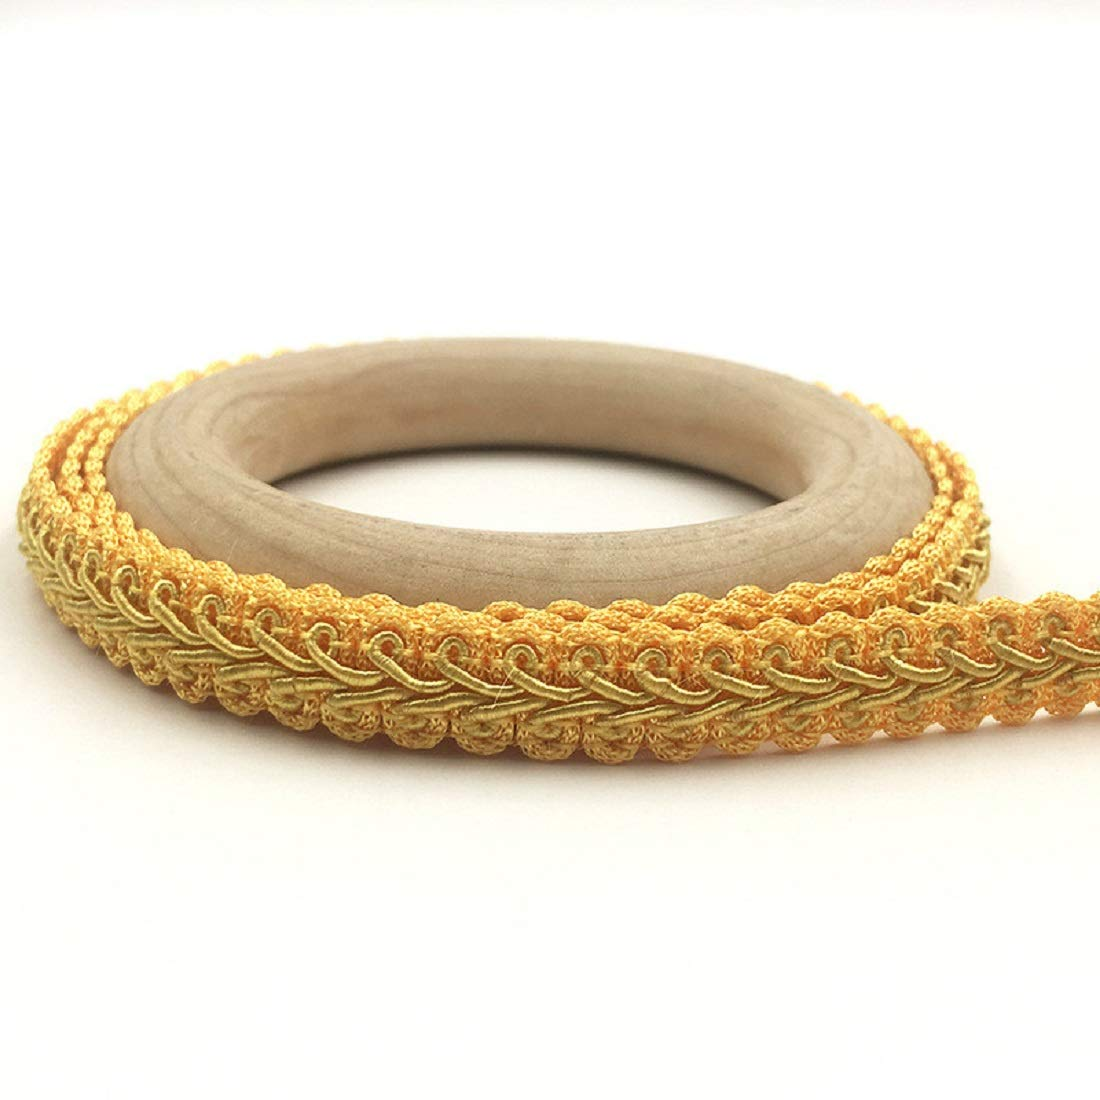 Yalulu 10 Meter Embroidery Braid Twist Woven Fabric Cord Lace Sewing Braid Trim Sewing Trimming Edge Craft Decorative Ribbon Gold